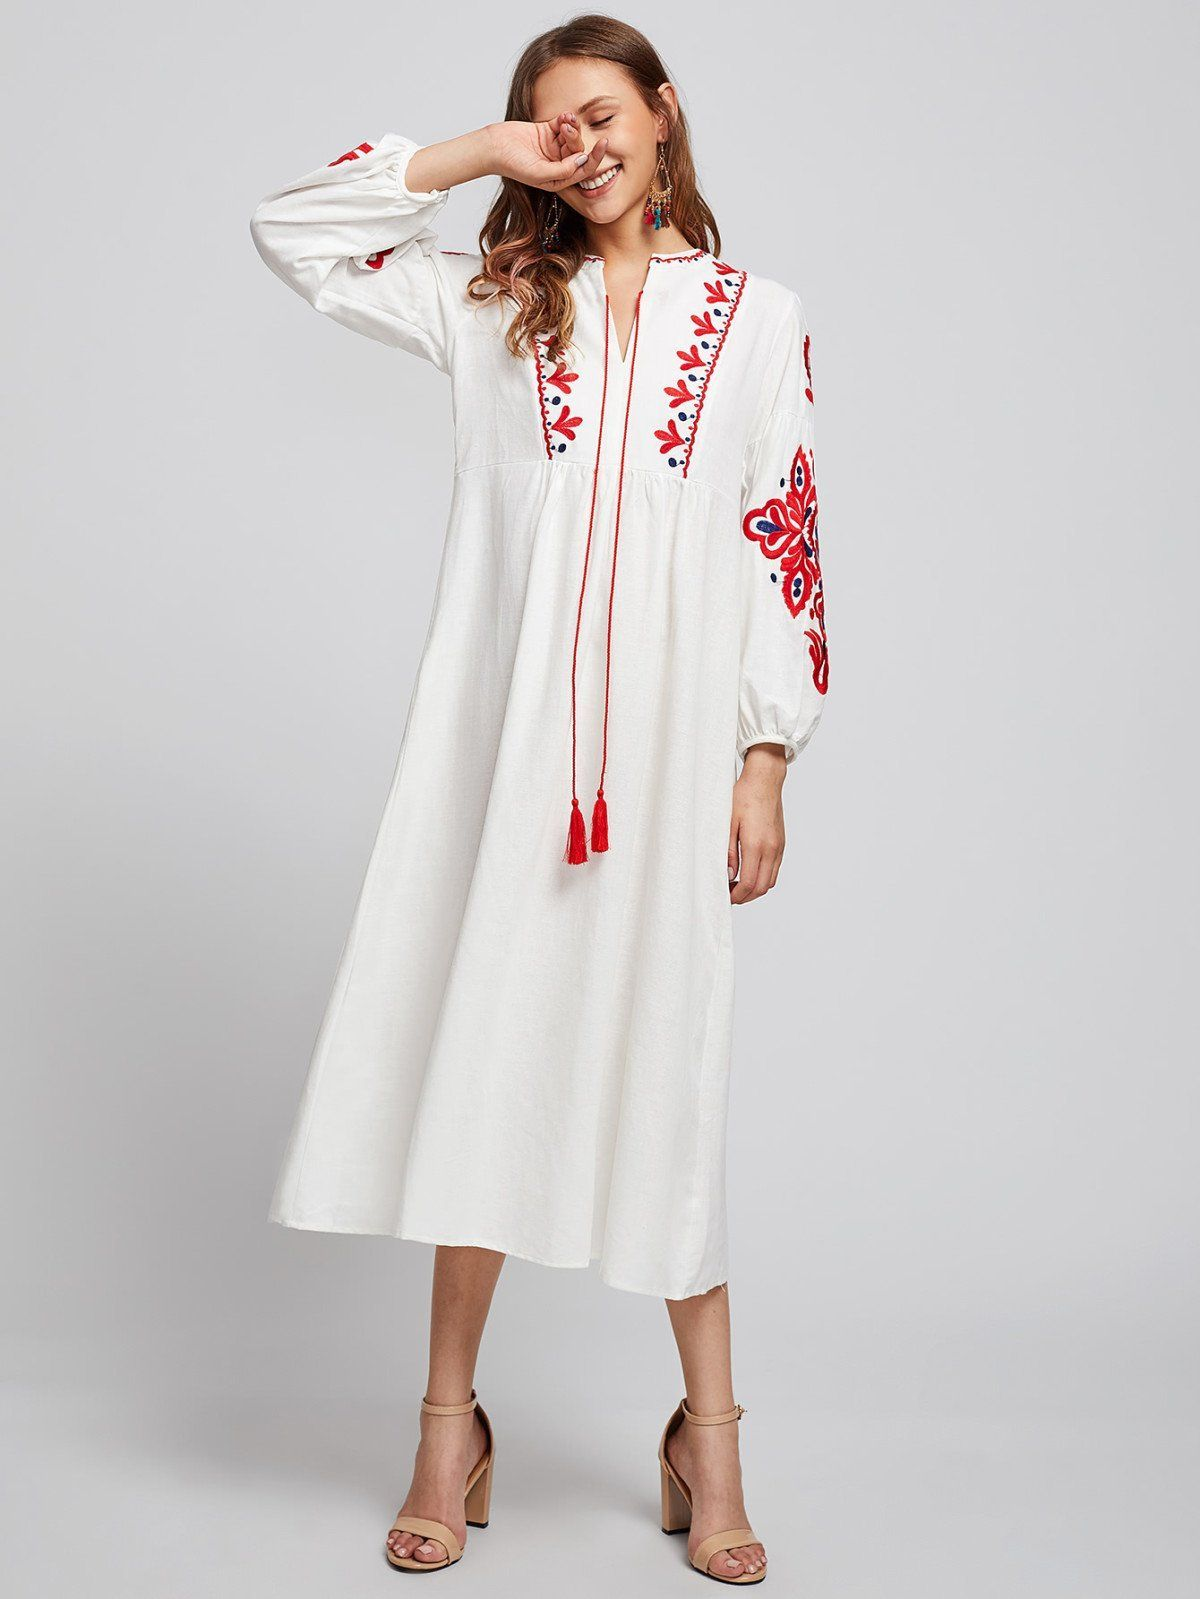 Dresses by borntowear embroidered lantern sleeve fringe dress